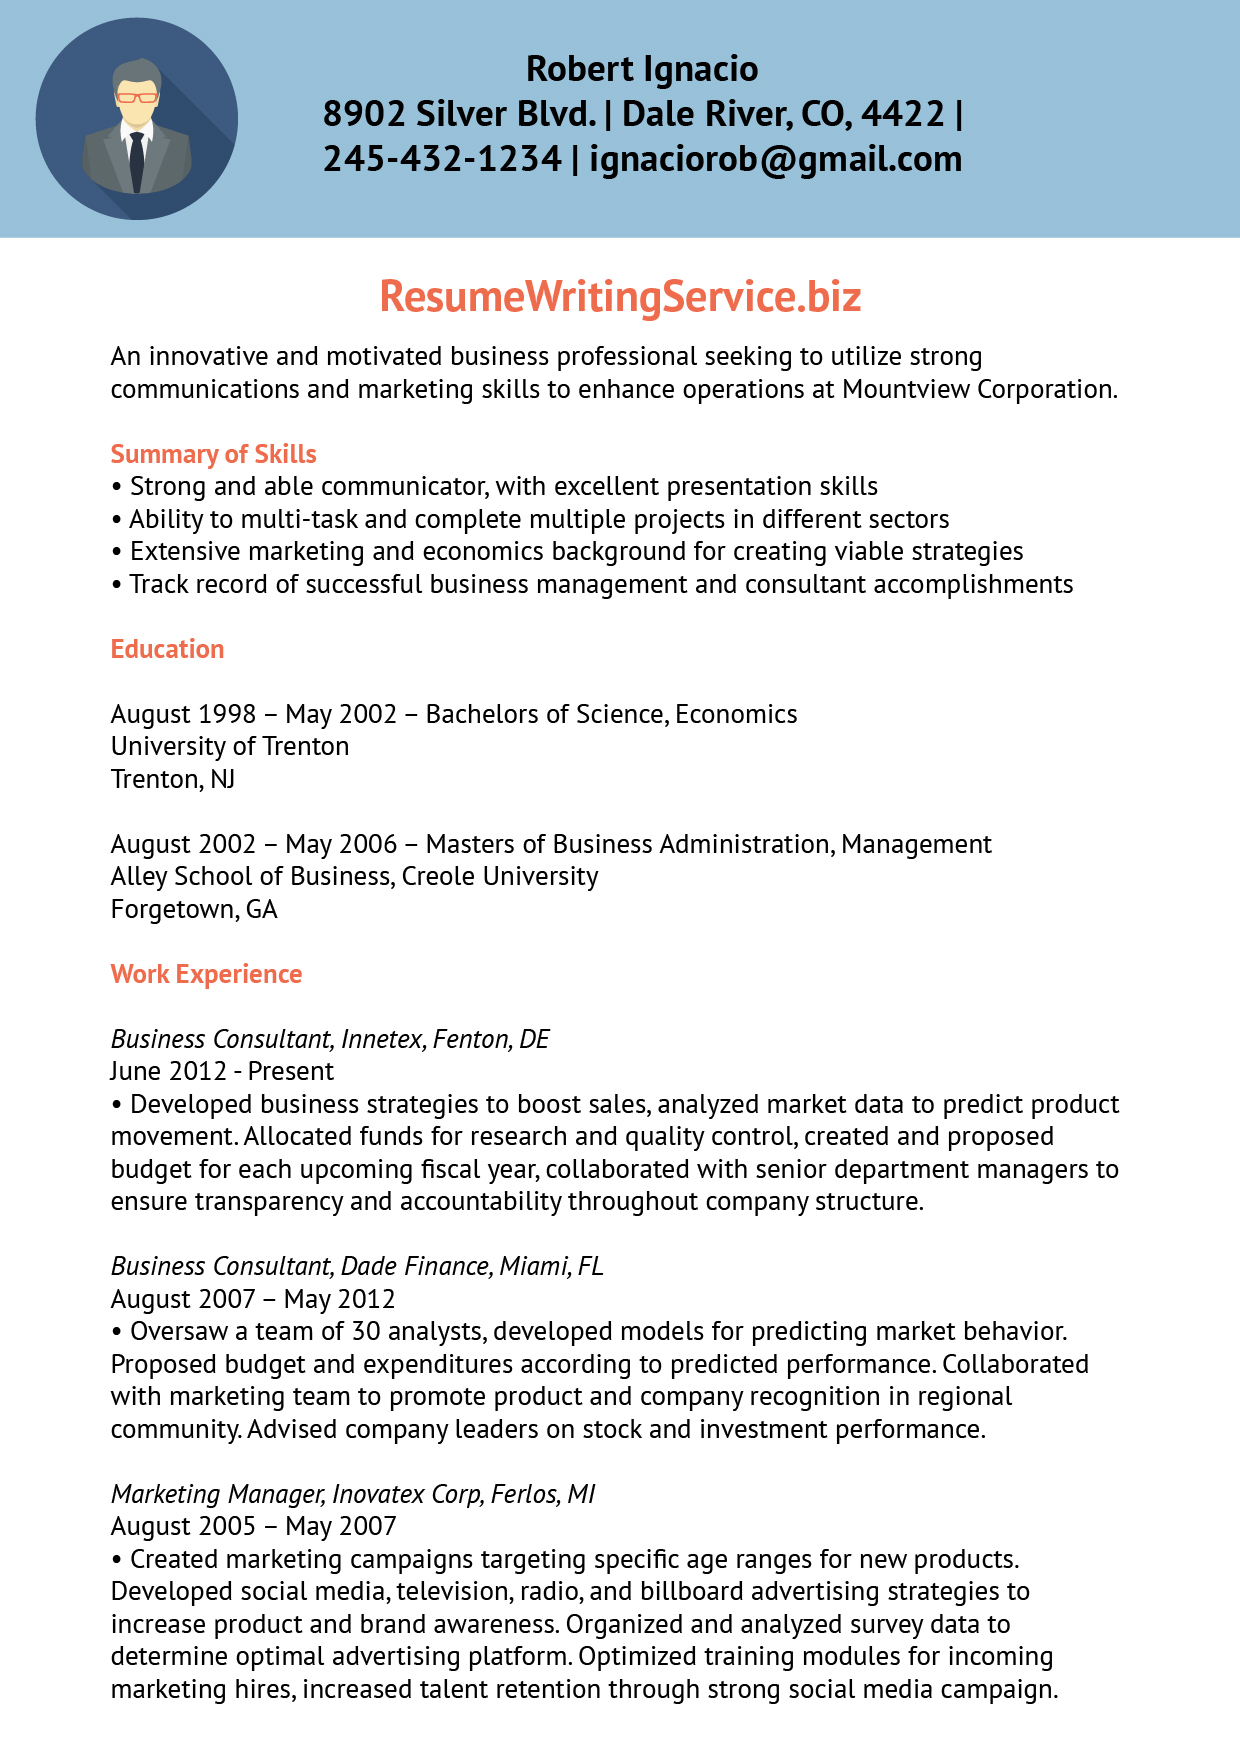 Experienced Management Consulting Resume Free Sample Resume Cover Financial  Consultant Resume Example  Financial Consultant Resume